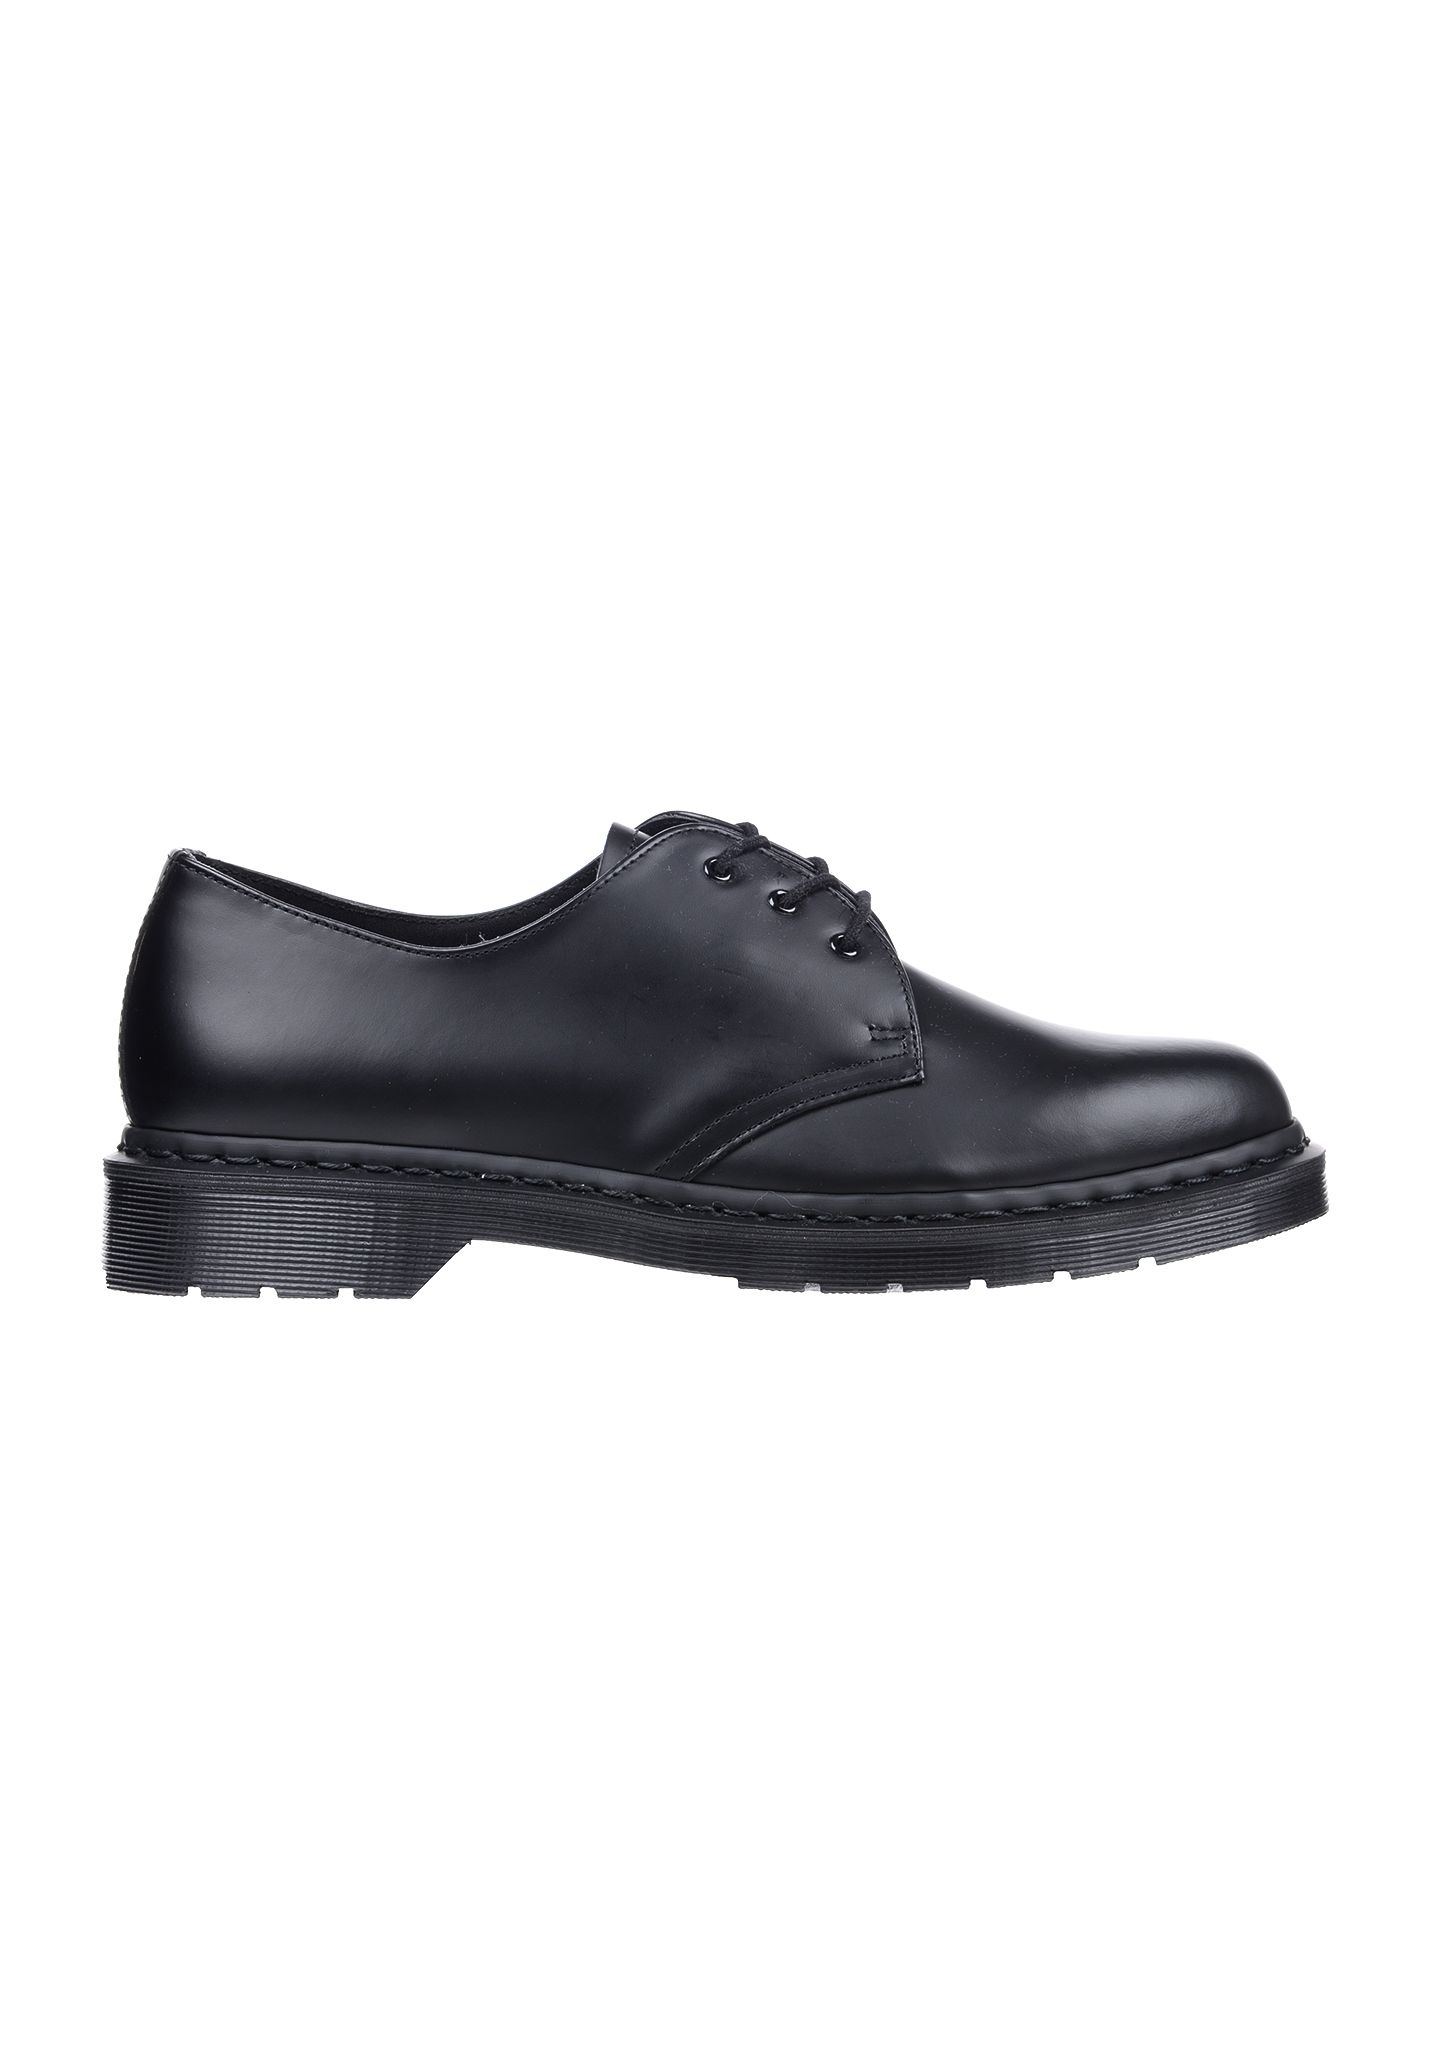 9db3266bf5f Dr. Martens 1461 Mono Smooth - Fashion Shoes - Black - Planet Sports